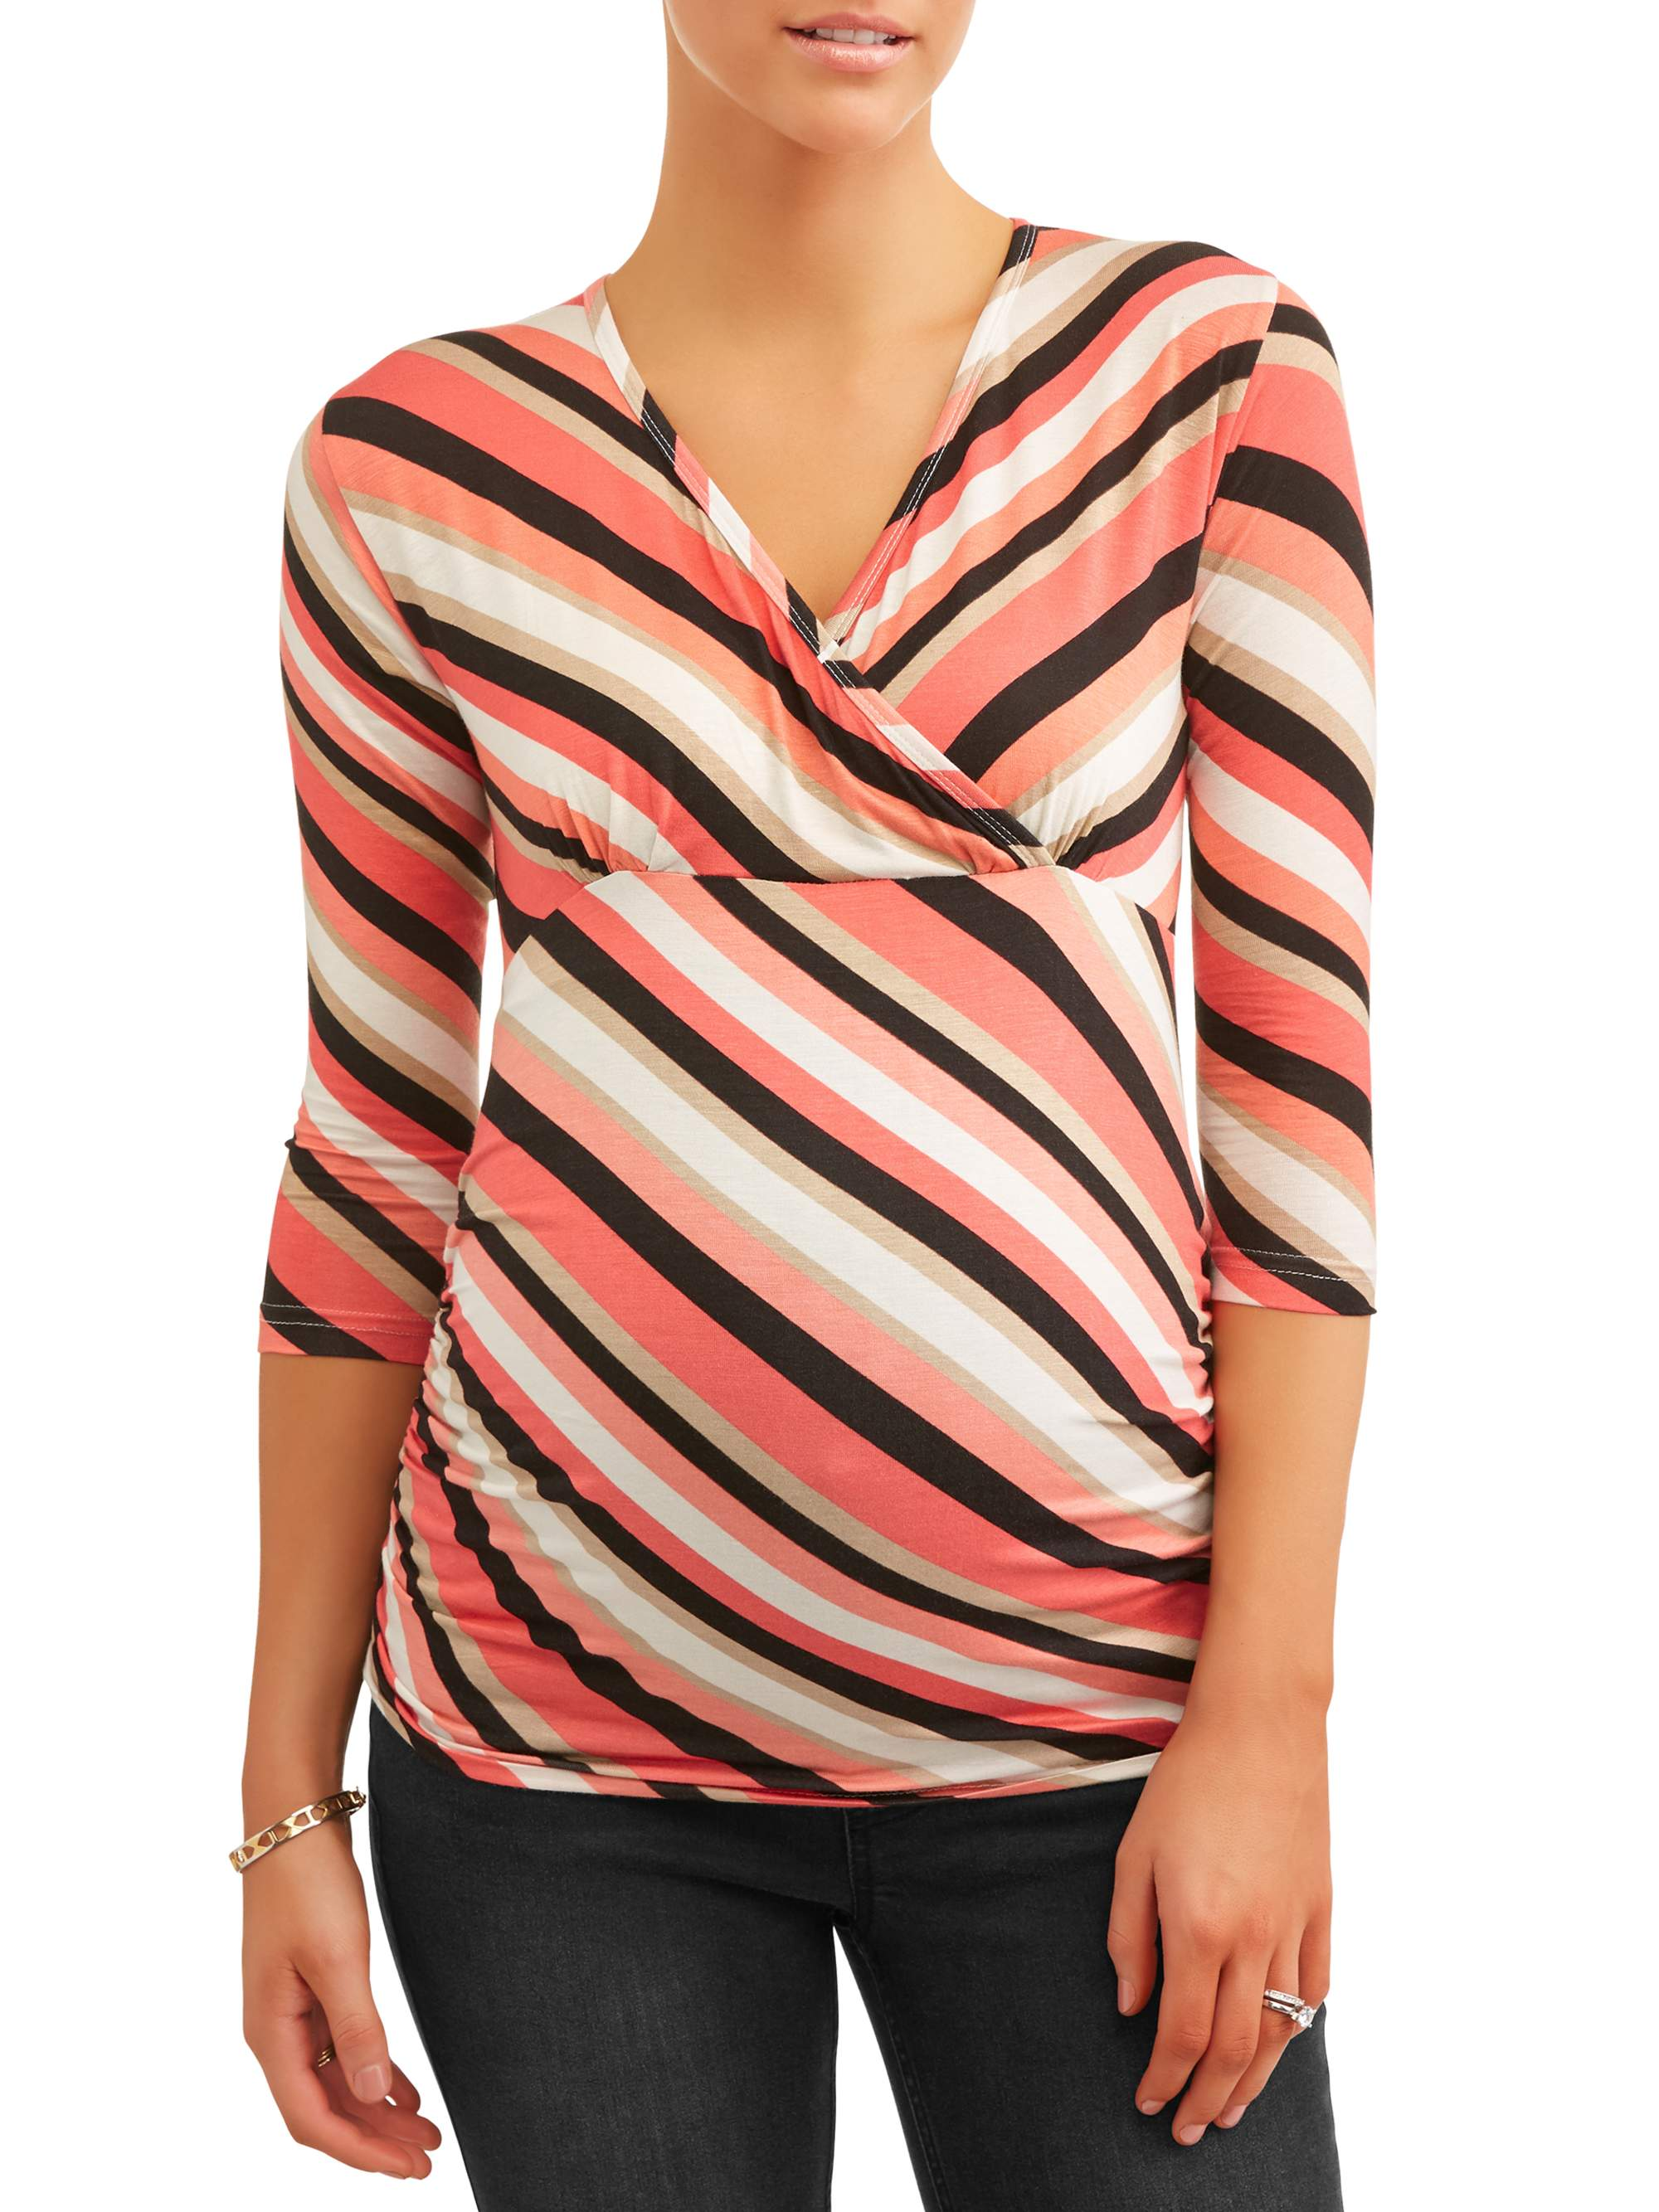 Maternity Surplice Stripe Knit Top - Available in Plus Sizes